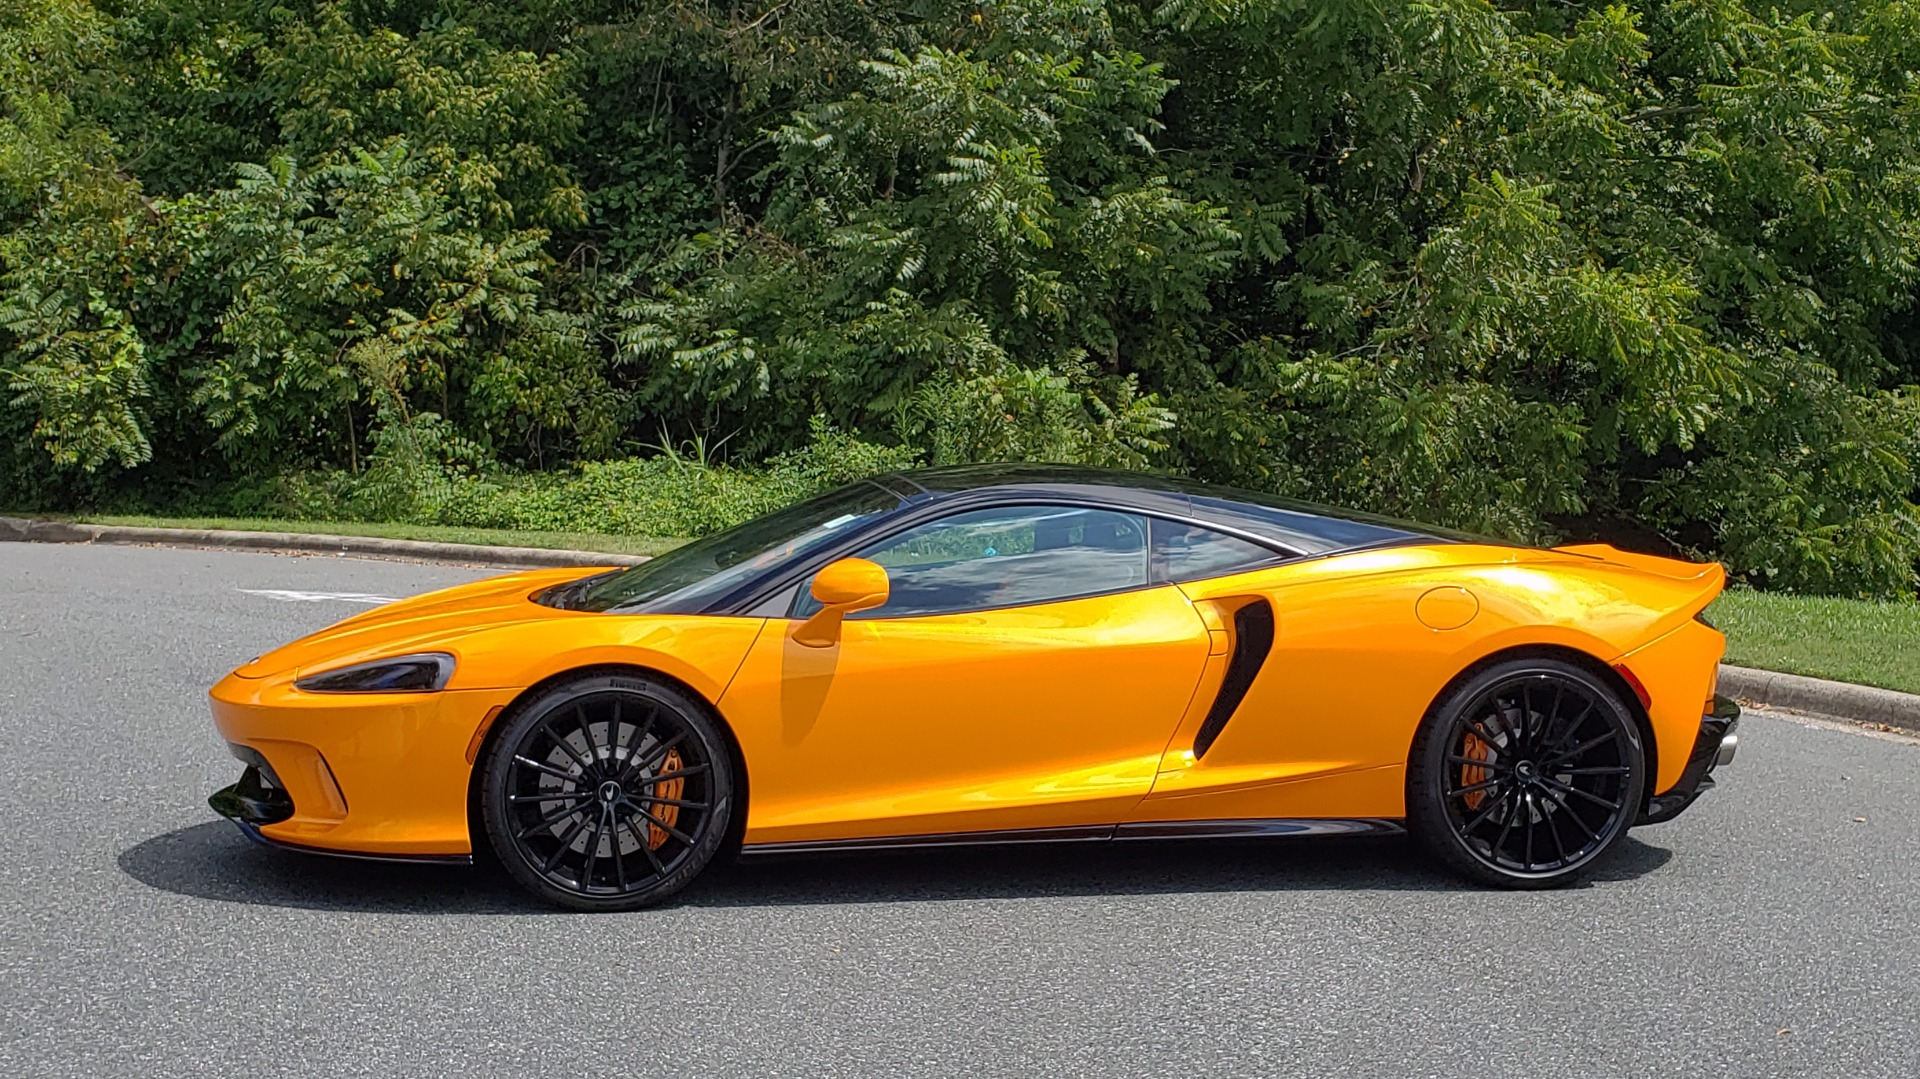 Used 2020 McLaren GT COUPE / 4.0L V8 - 612HP / RWD / NAV / REARVIEW / 20IN BLACK WHEELS for sale $244,000 at Formula Imports in Charlotte NC 28227 6